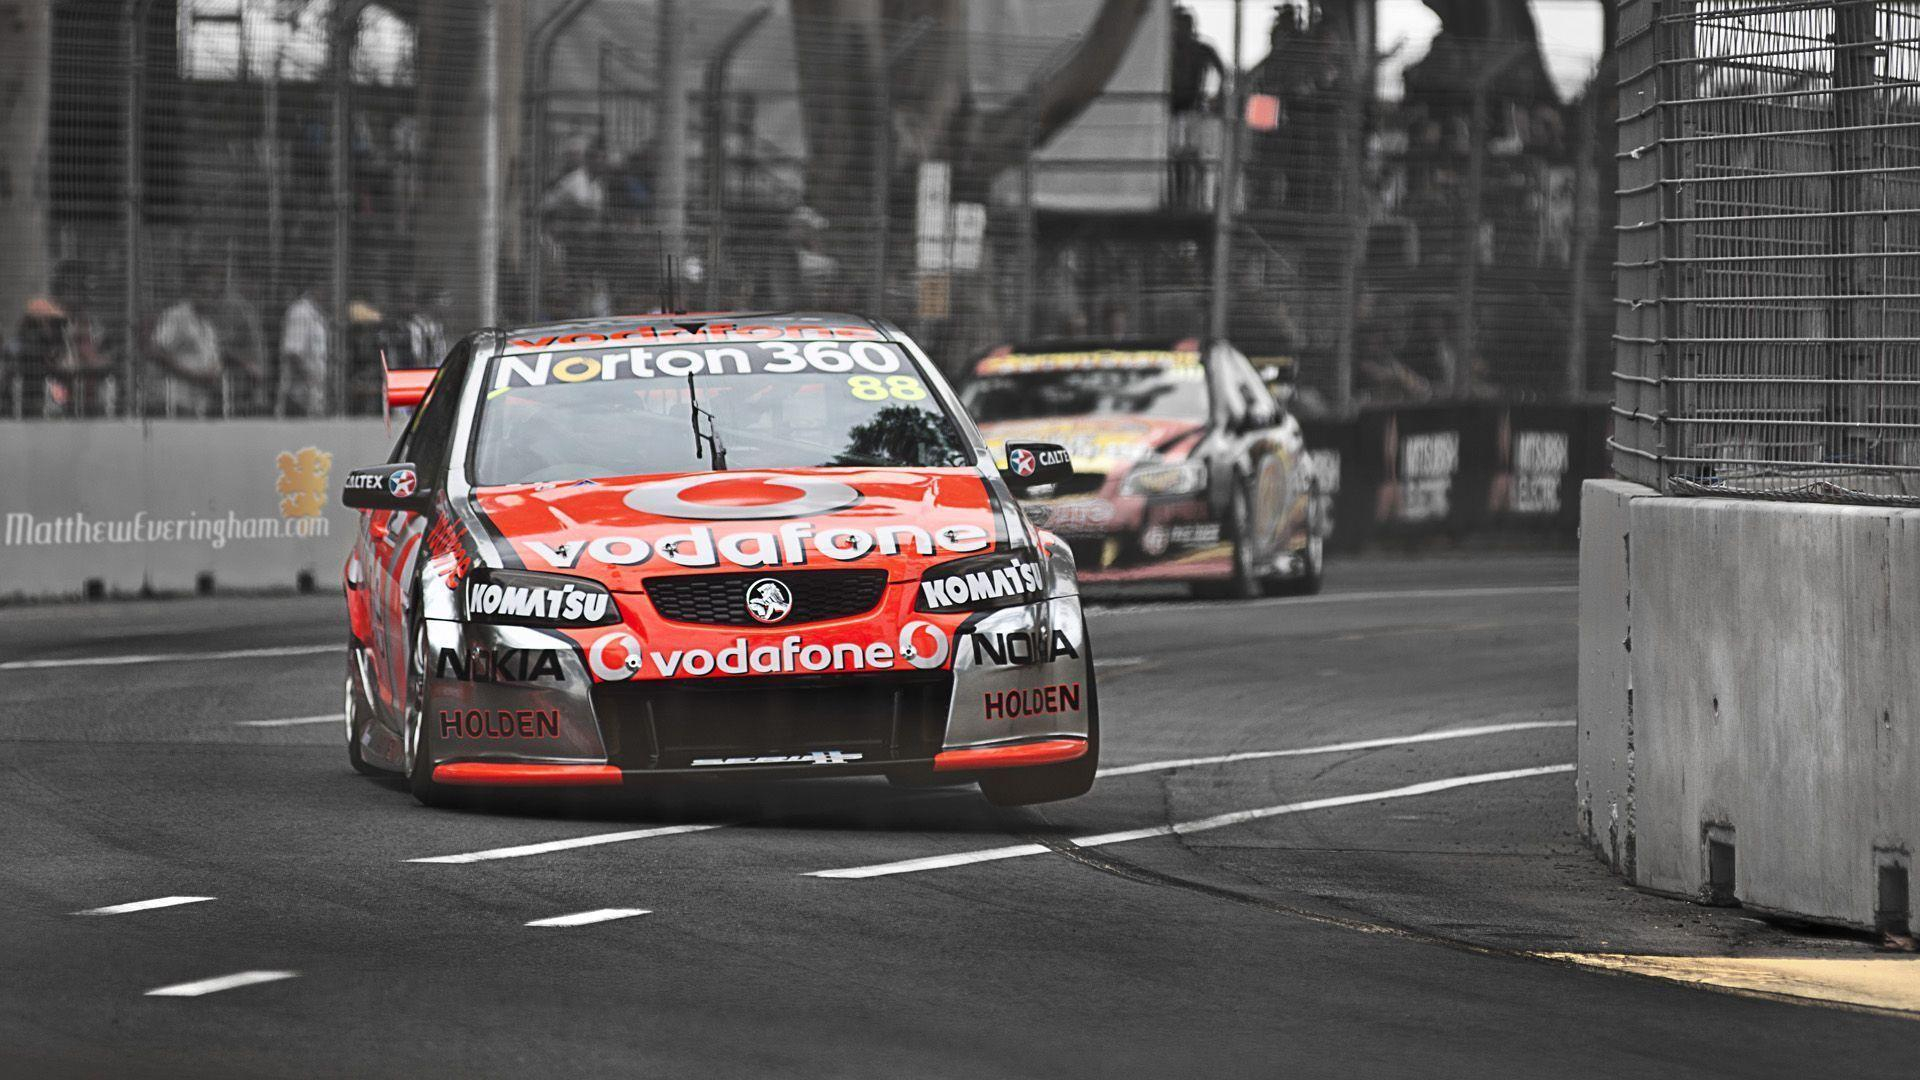 V8 Supercars Wallpapers 1920x1080